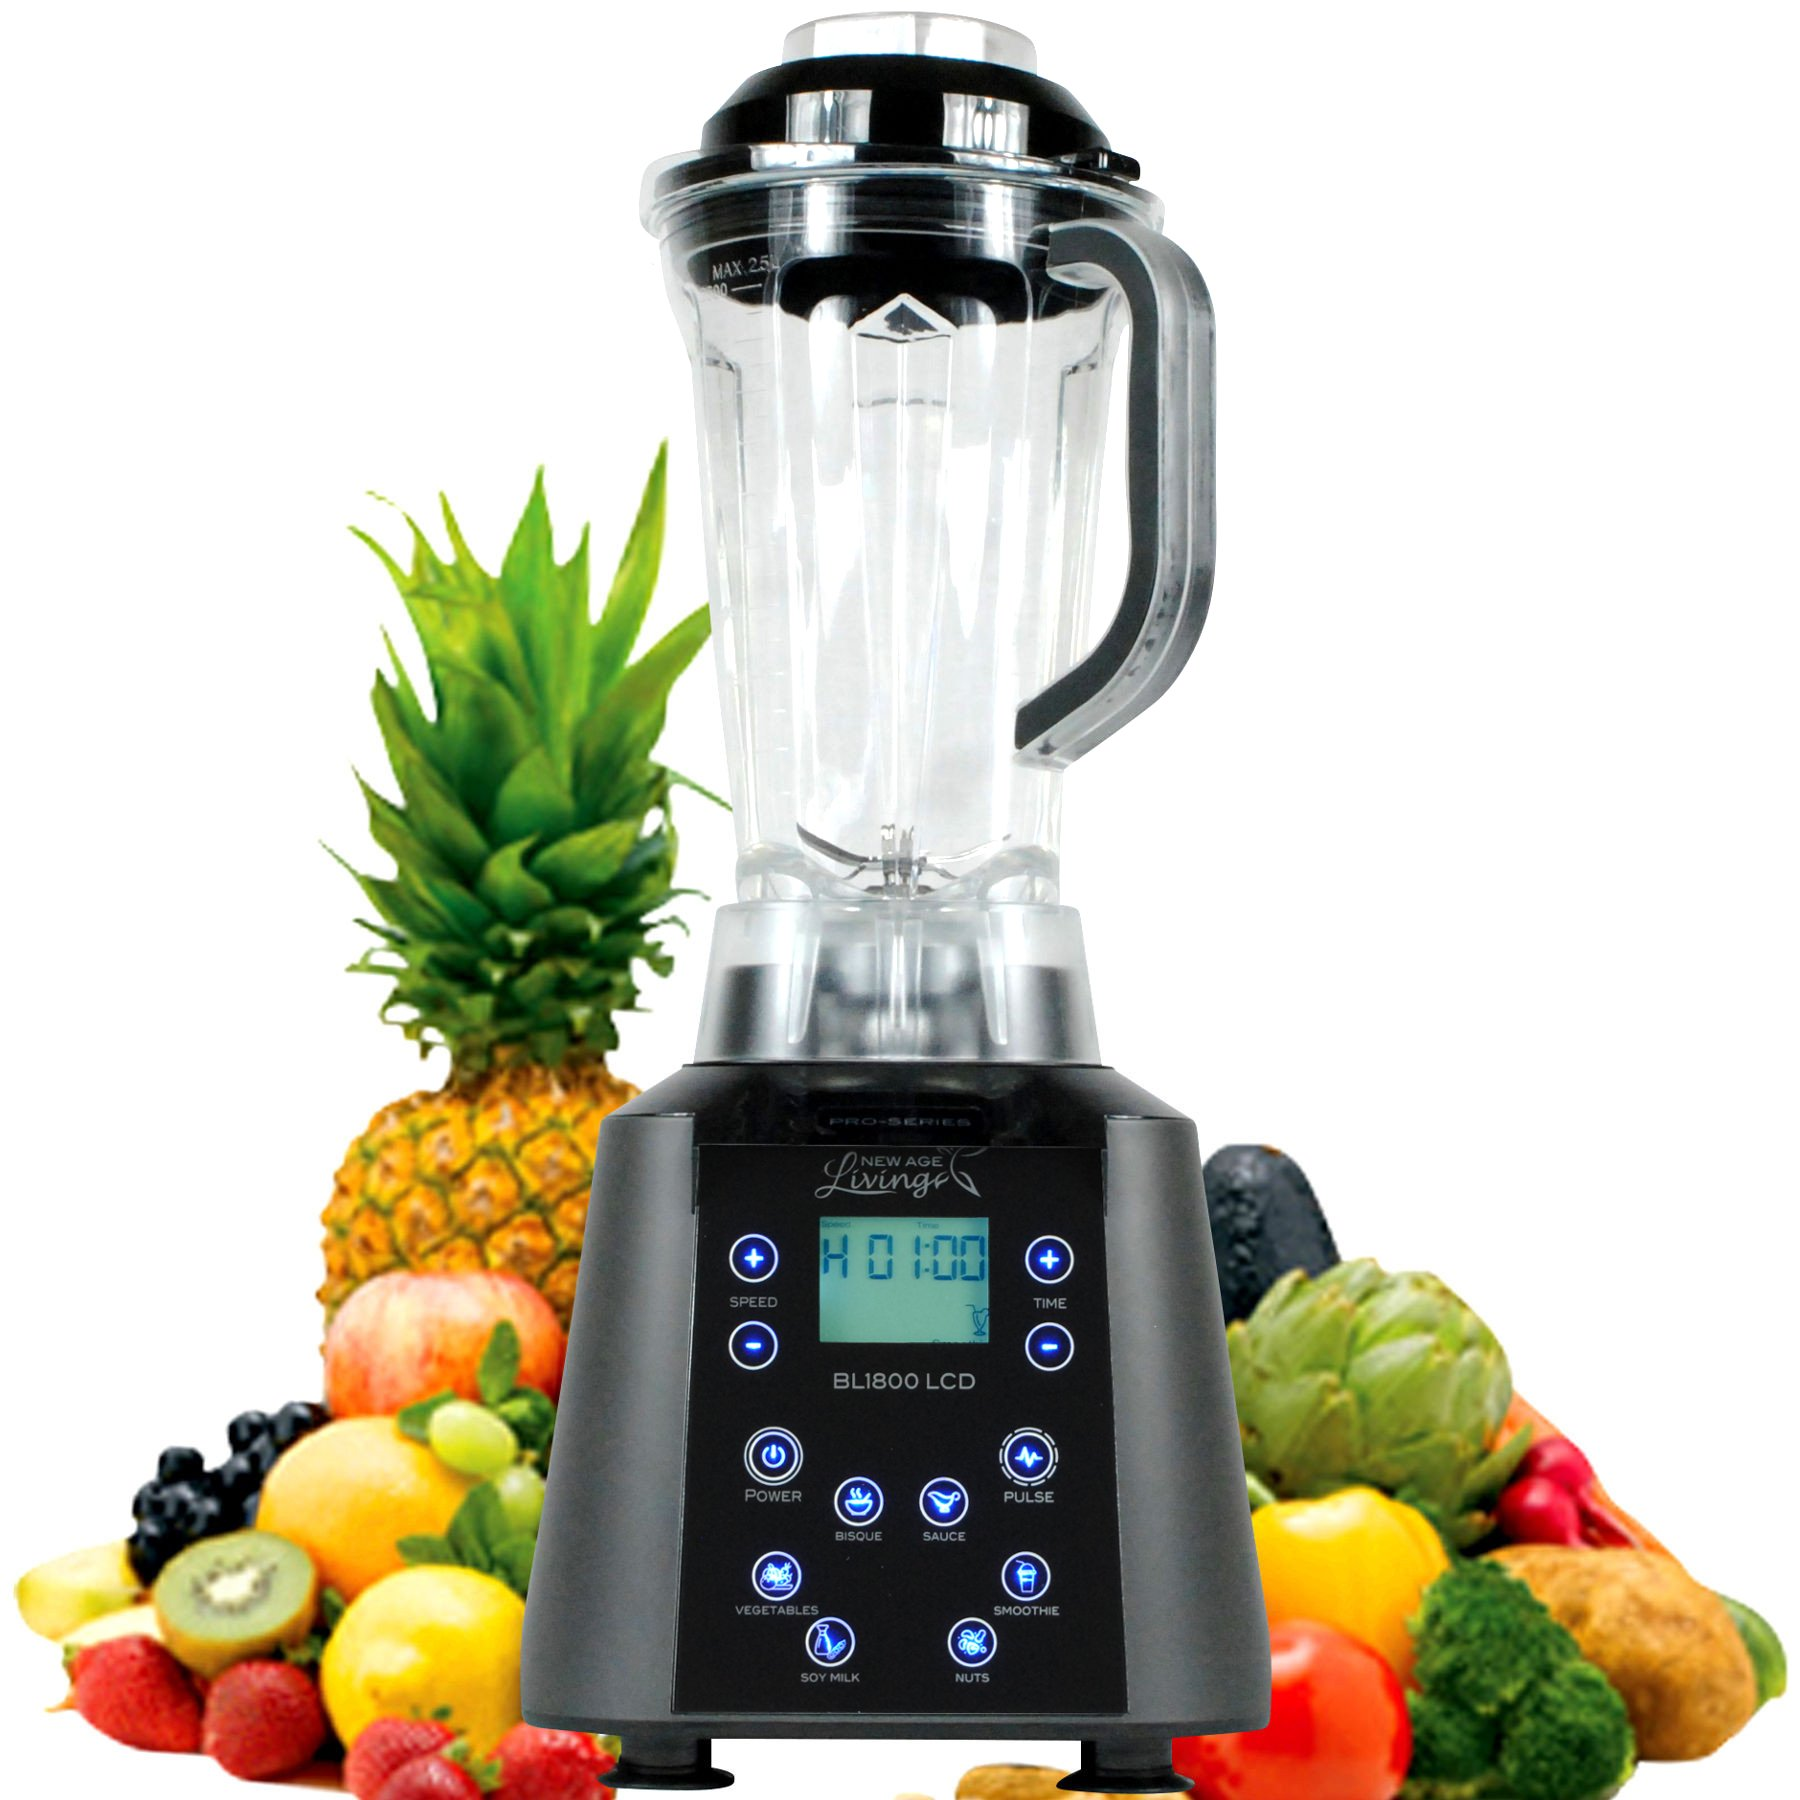 New Age Living BL1800 LCD | Touch Panel Digital Soup & Smoothie Blender | 3.5HP Peak Power | Blends Frozen Fruits, Vegetables, Greens, even Ice | 5 Year Warranty (Dark Grey)